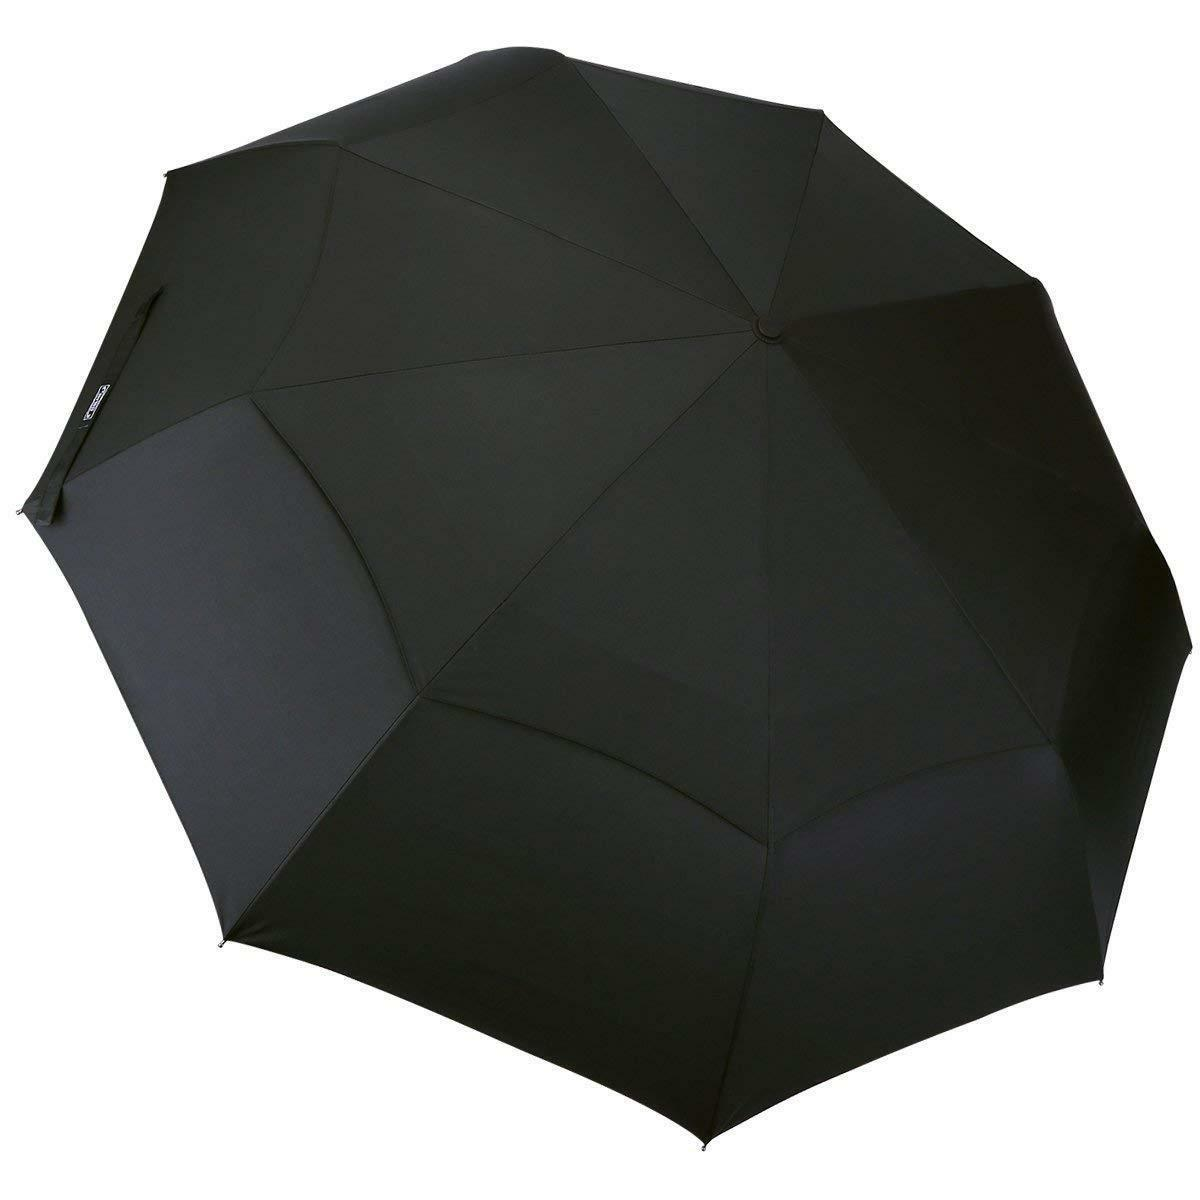 NEW G4Free 48 In Large Compact Folding Golf Umbrella Tr